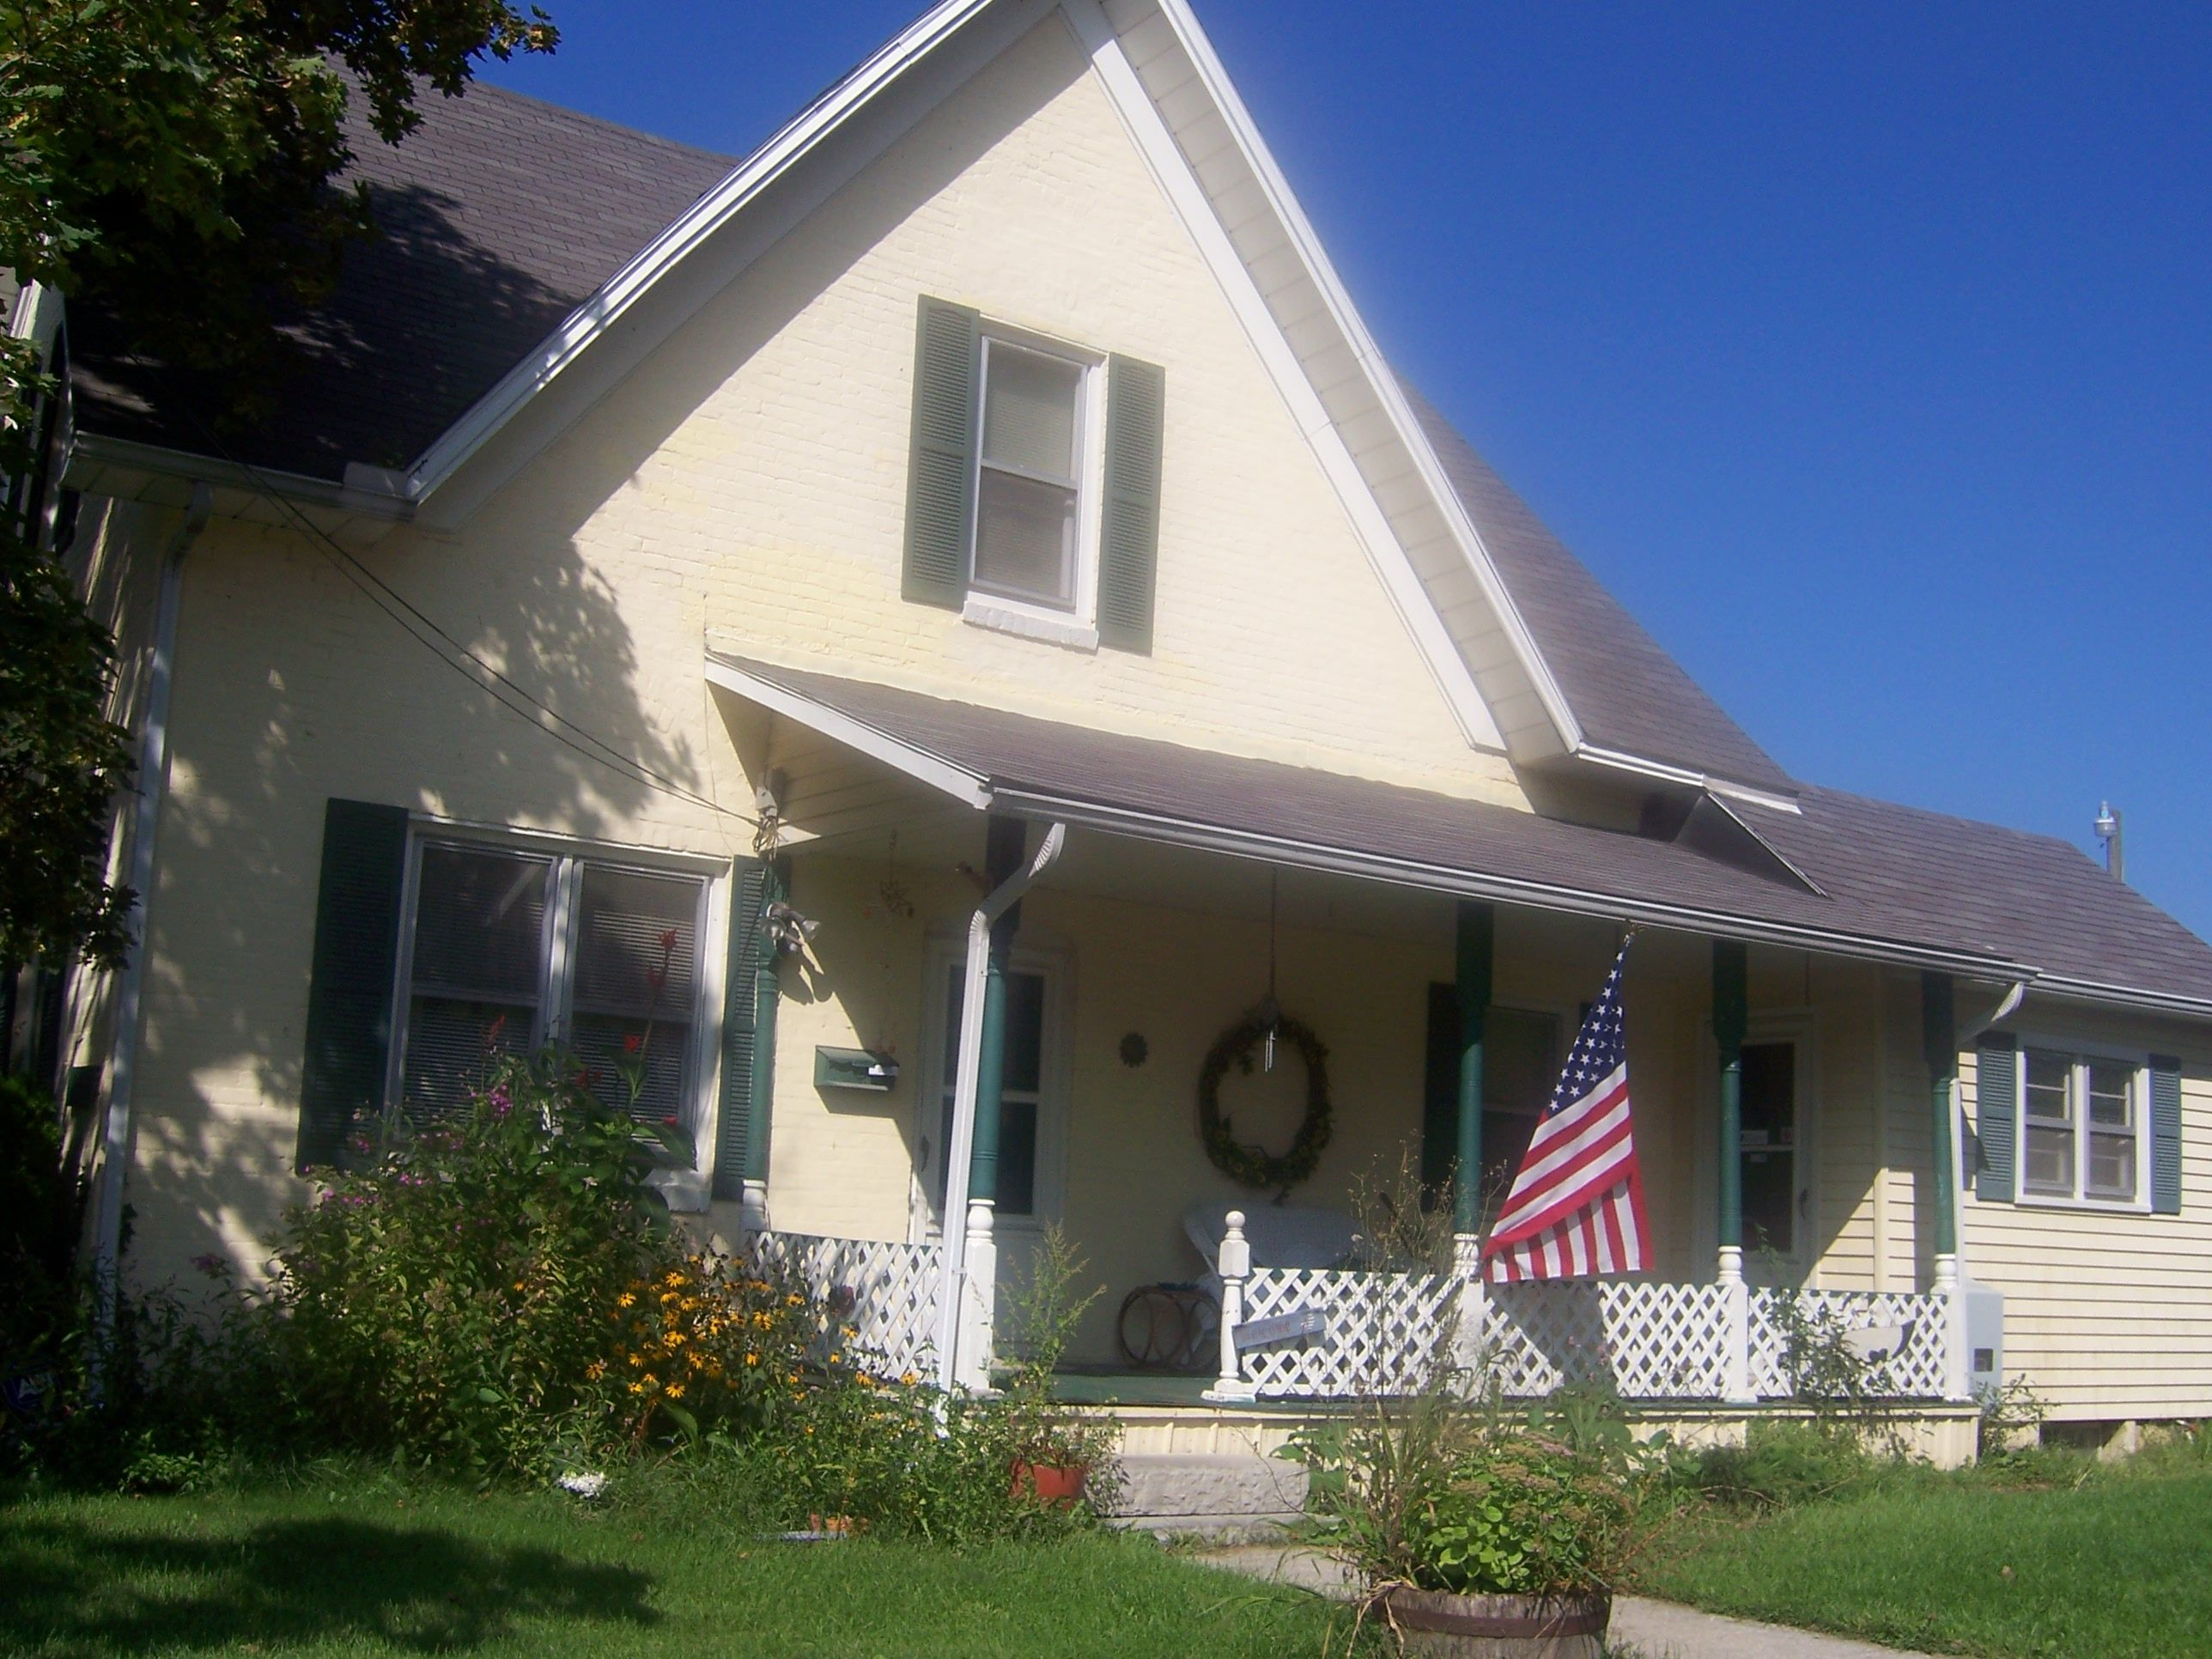 My Grandparents Old House Kokomo In Spent Many Summers There In The 40 S 50 S With Images Old House Outdoor Decor Home Decor